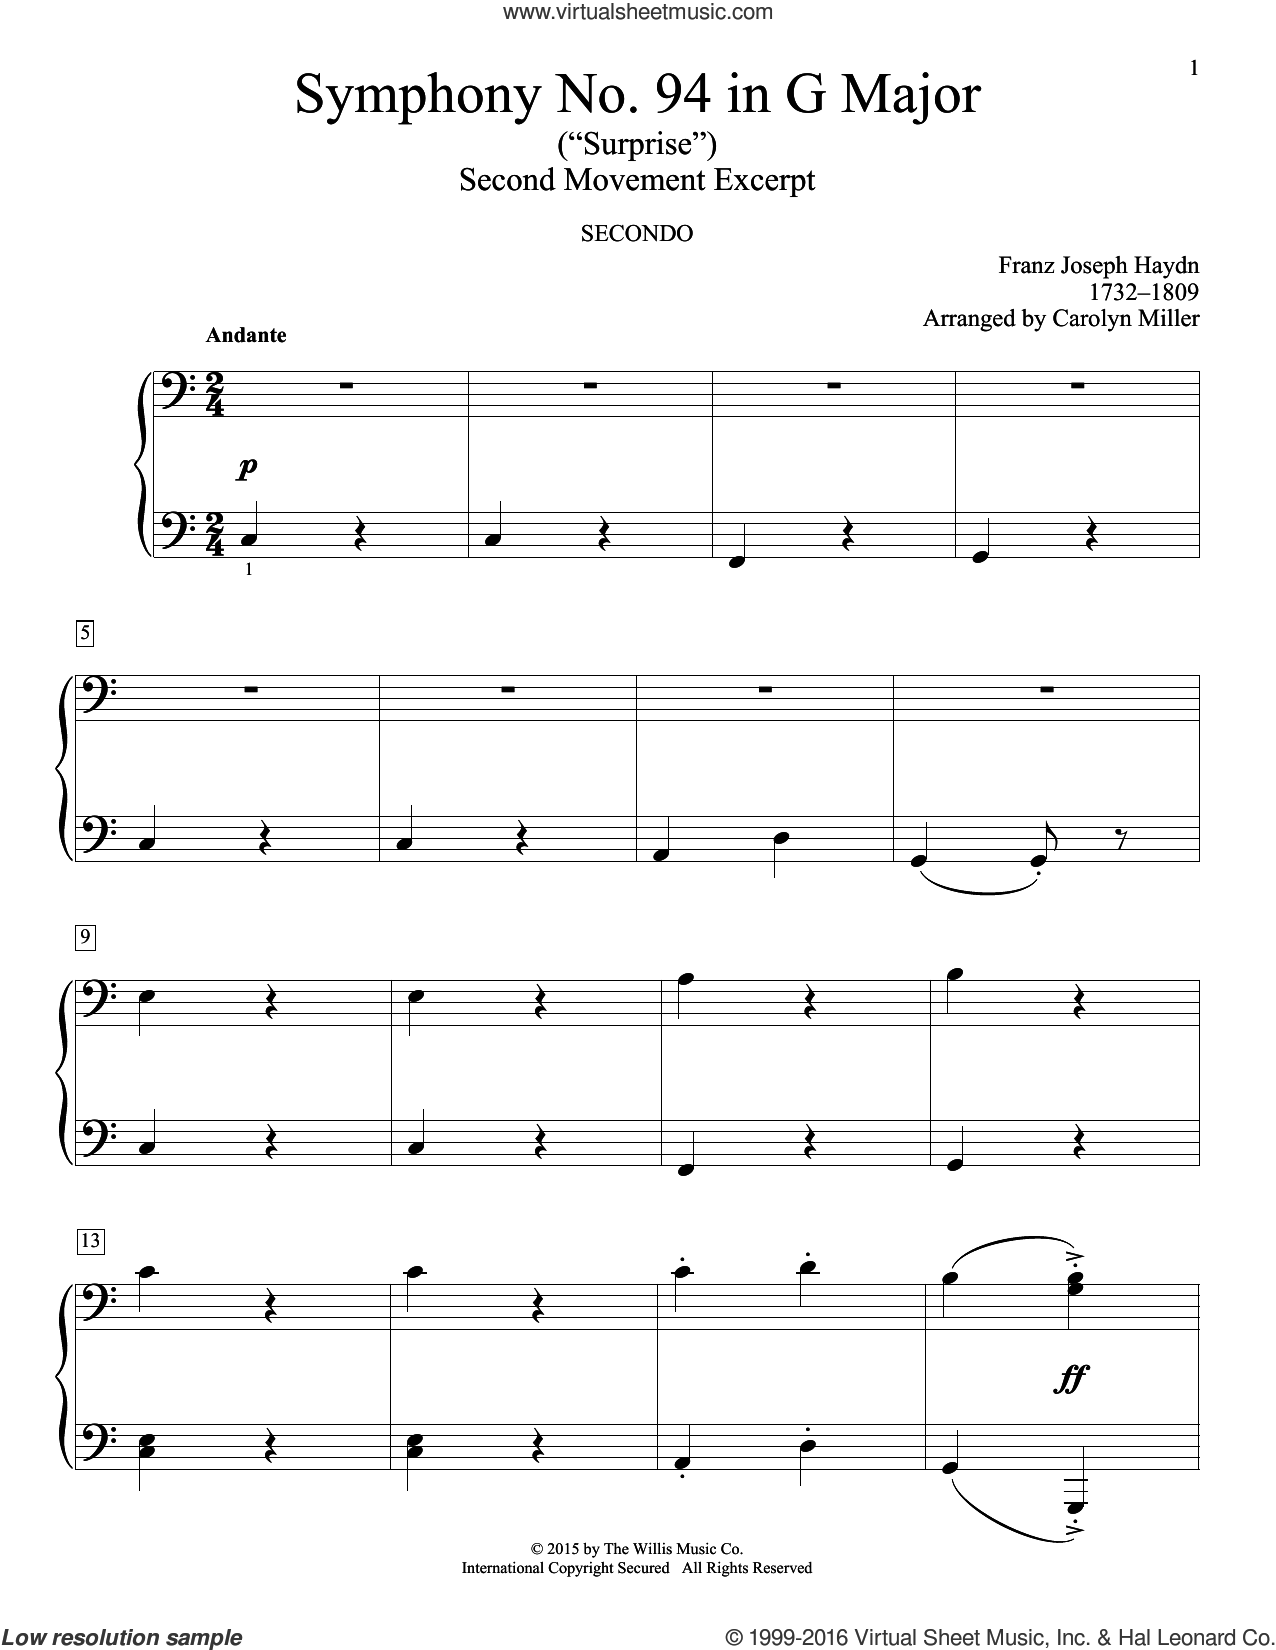 Symphony No. 94 In G Major (Surprise), Second Movement Excerpt sheet music for piano four hands by Franz Joseph Haydn and Carolyn Miller, classical score, intermediate